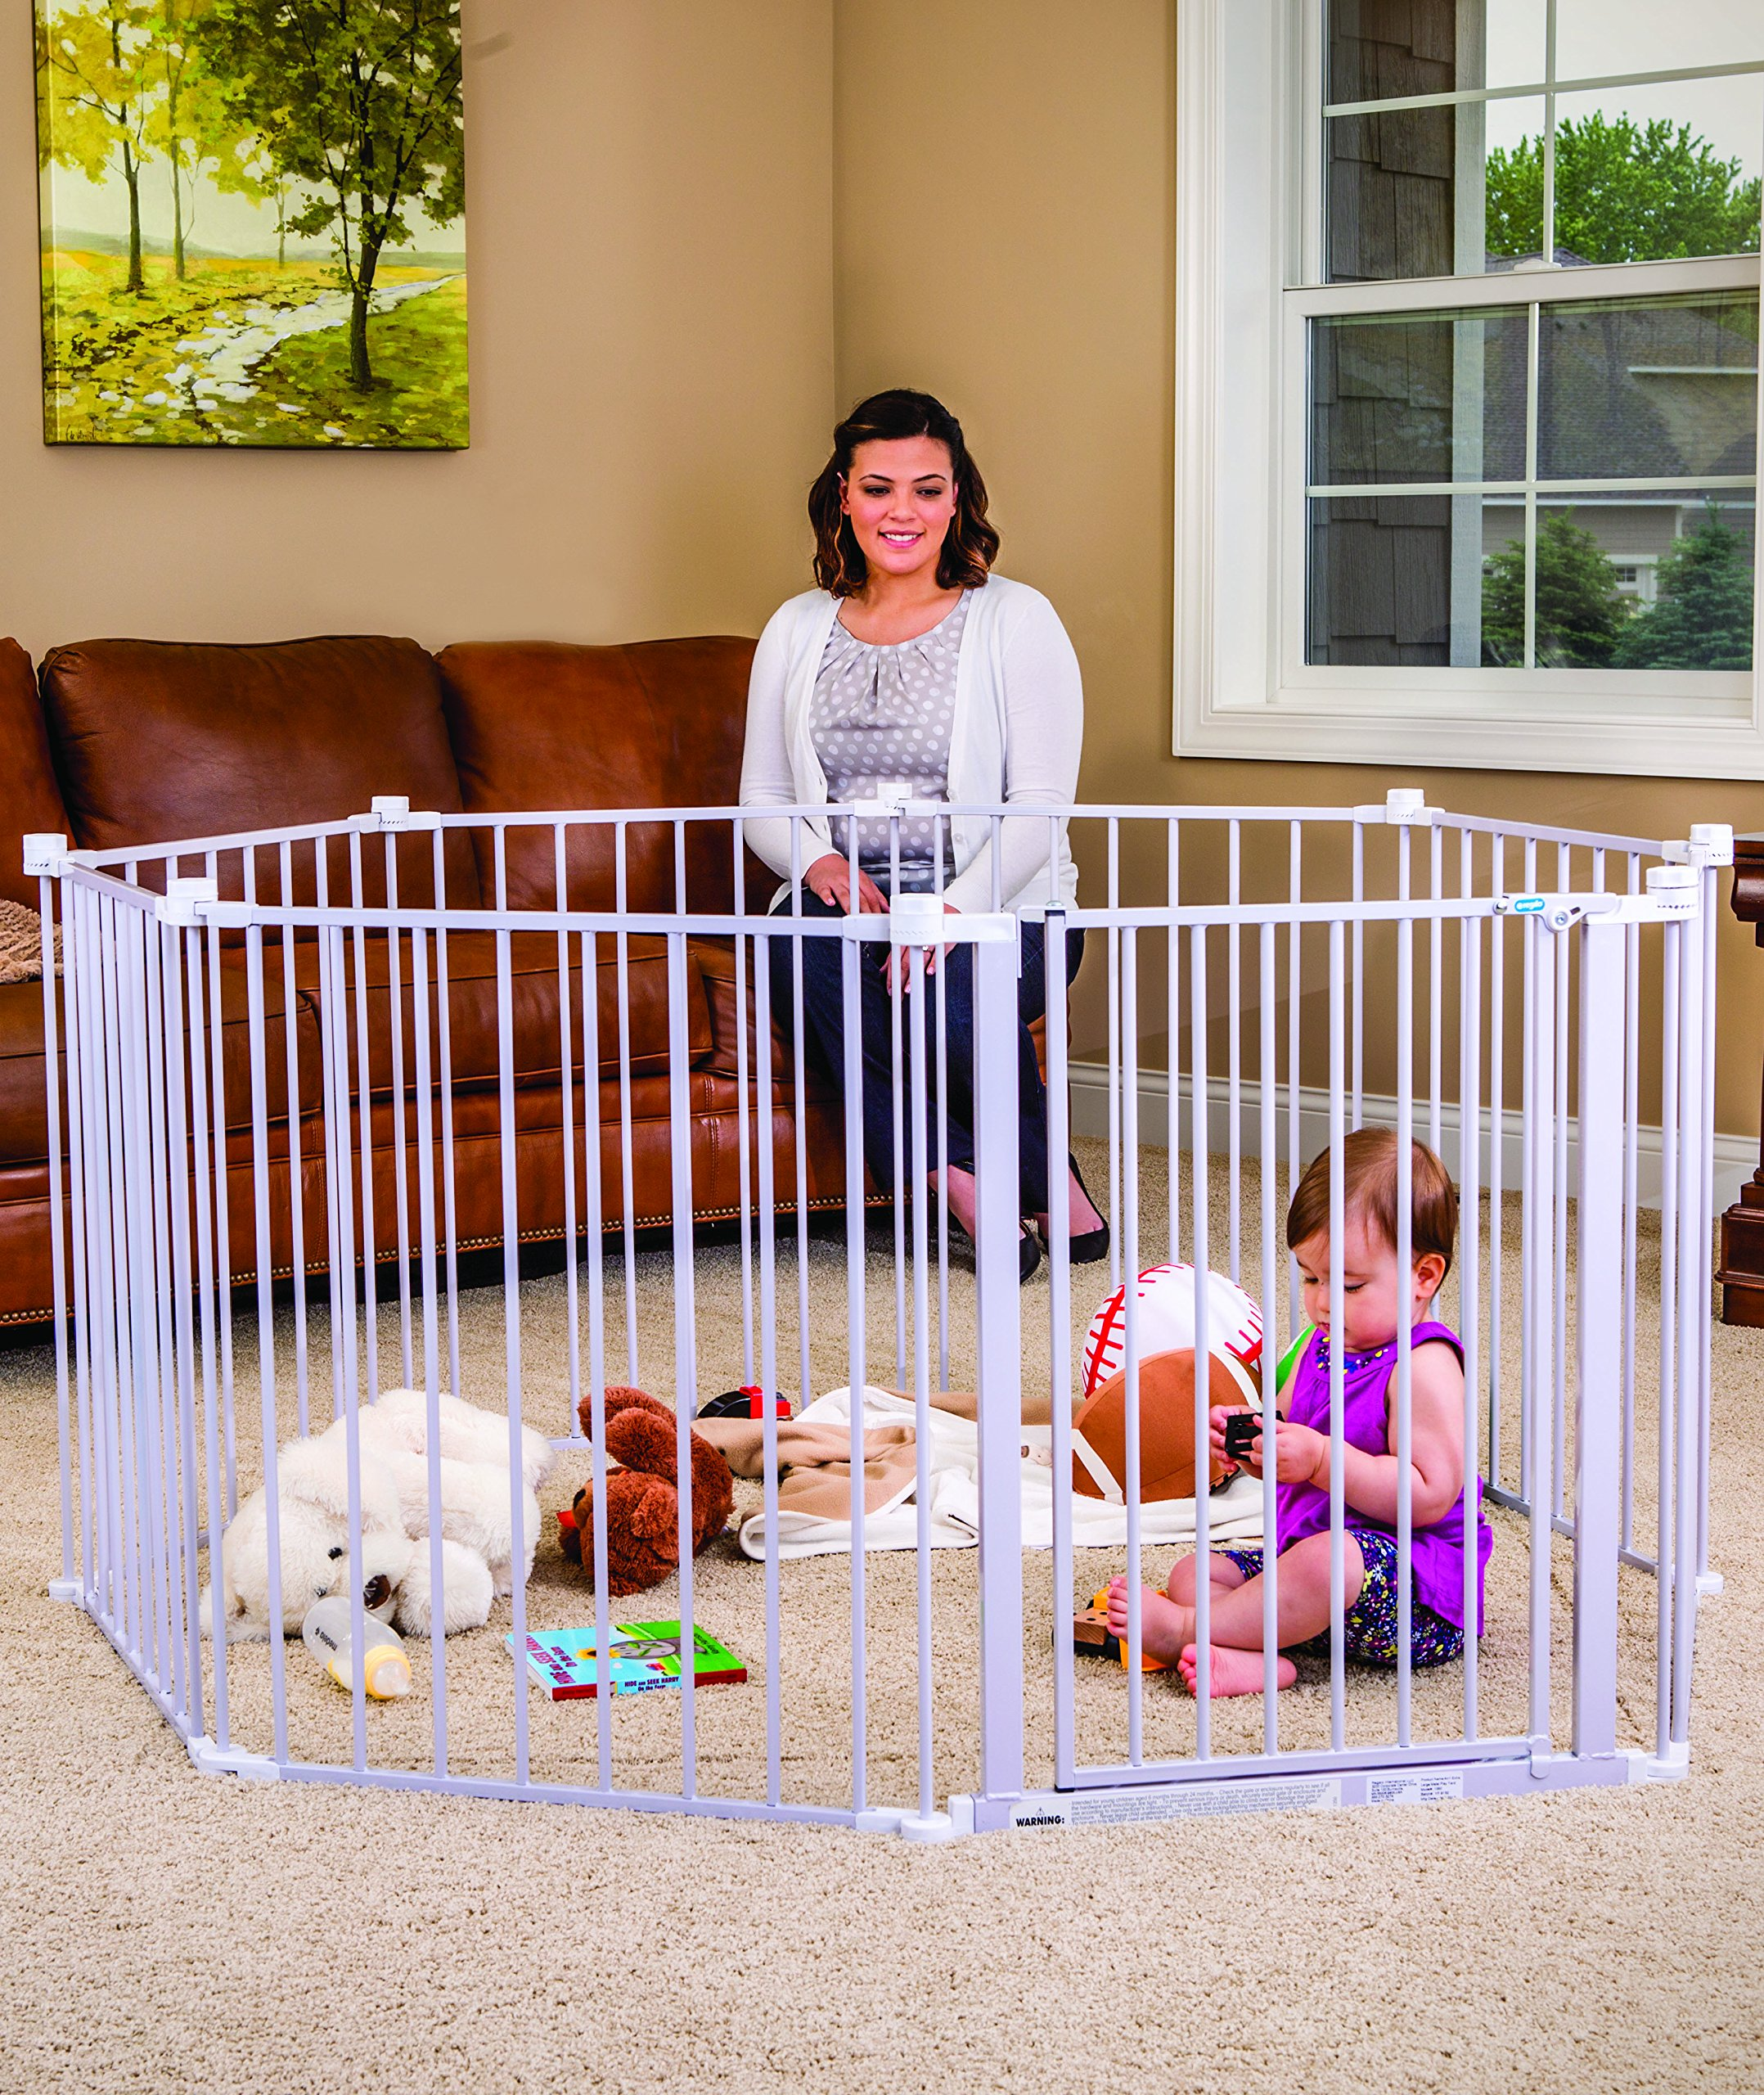 Regalo 192-Inch Super Wide Adjustable Baby Gate and Play Yard, 4-In-1, Bonus Kit, Includes 4 Pack of Wall Mounts by Regalo (Image #5)